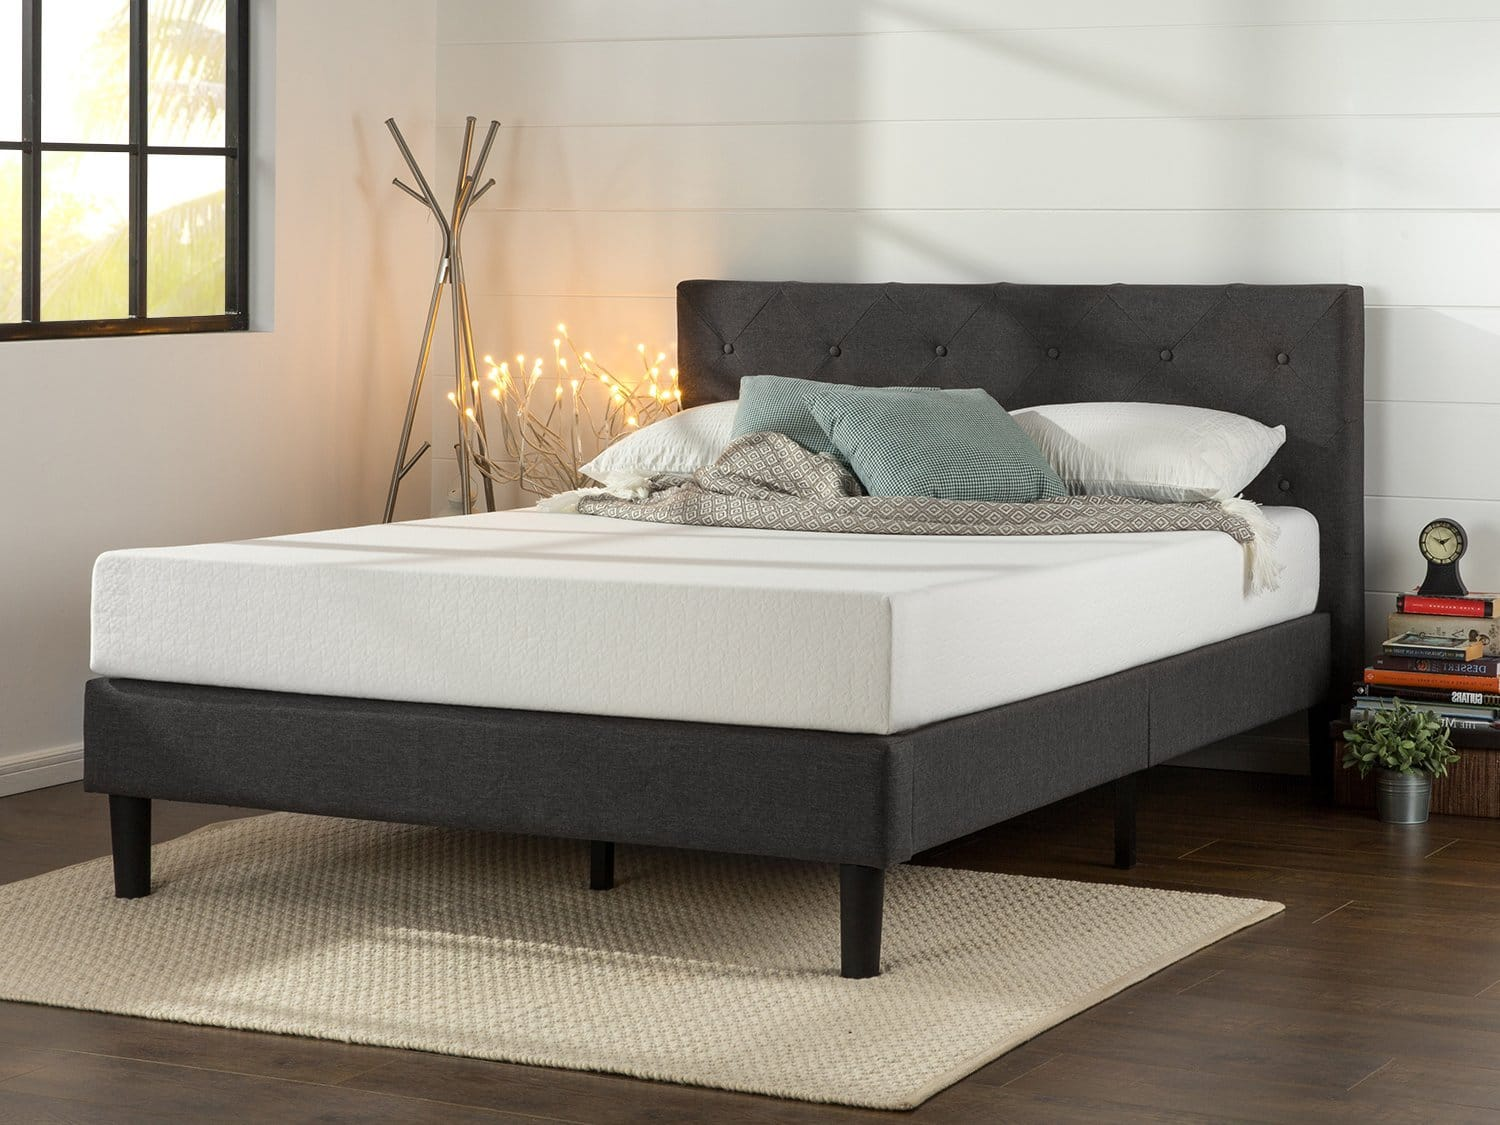 Fancy Zinus Upholstered Diamond Stitched Platform Bed Queen Slickdeals net